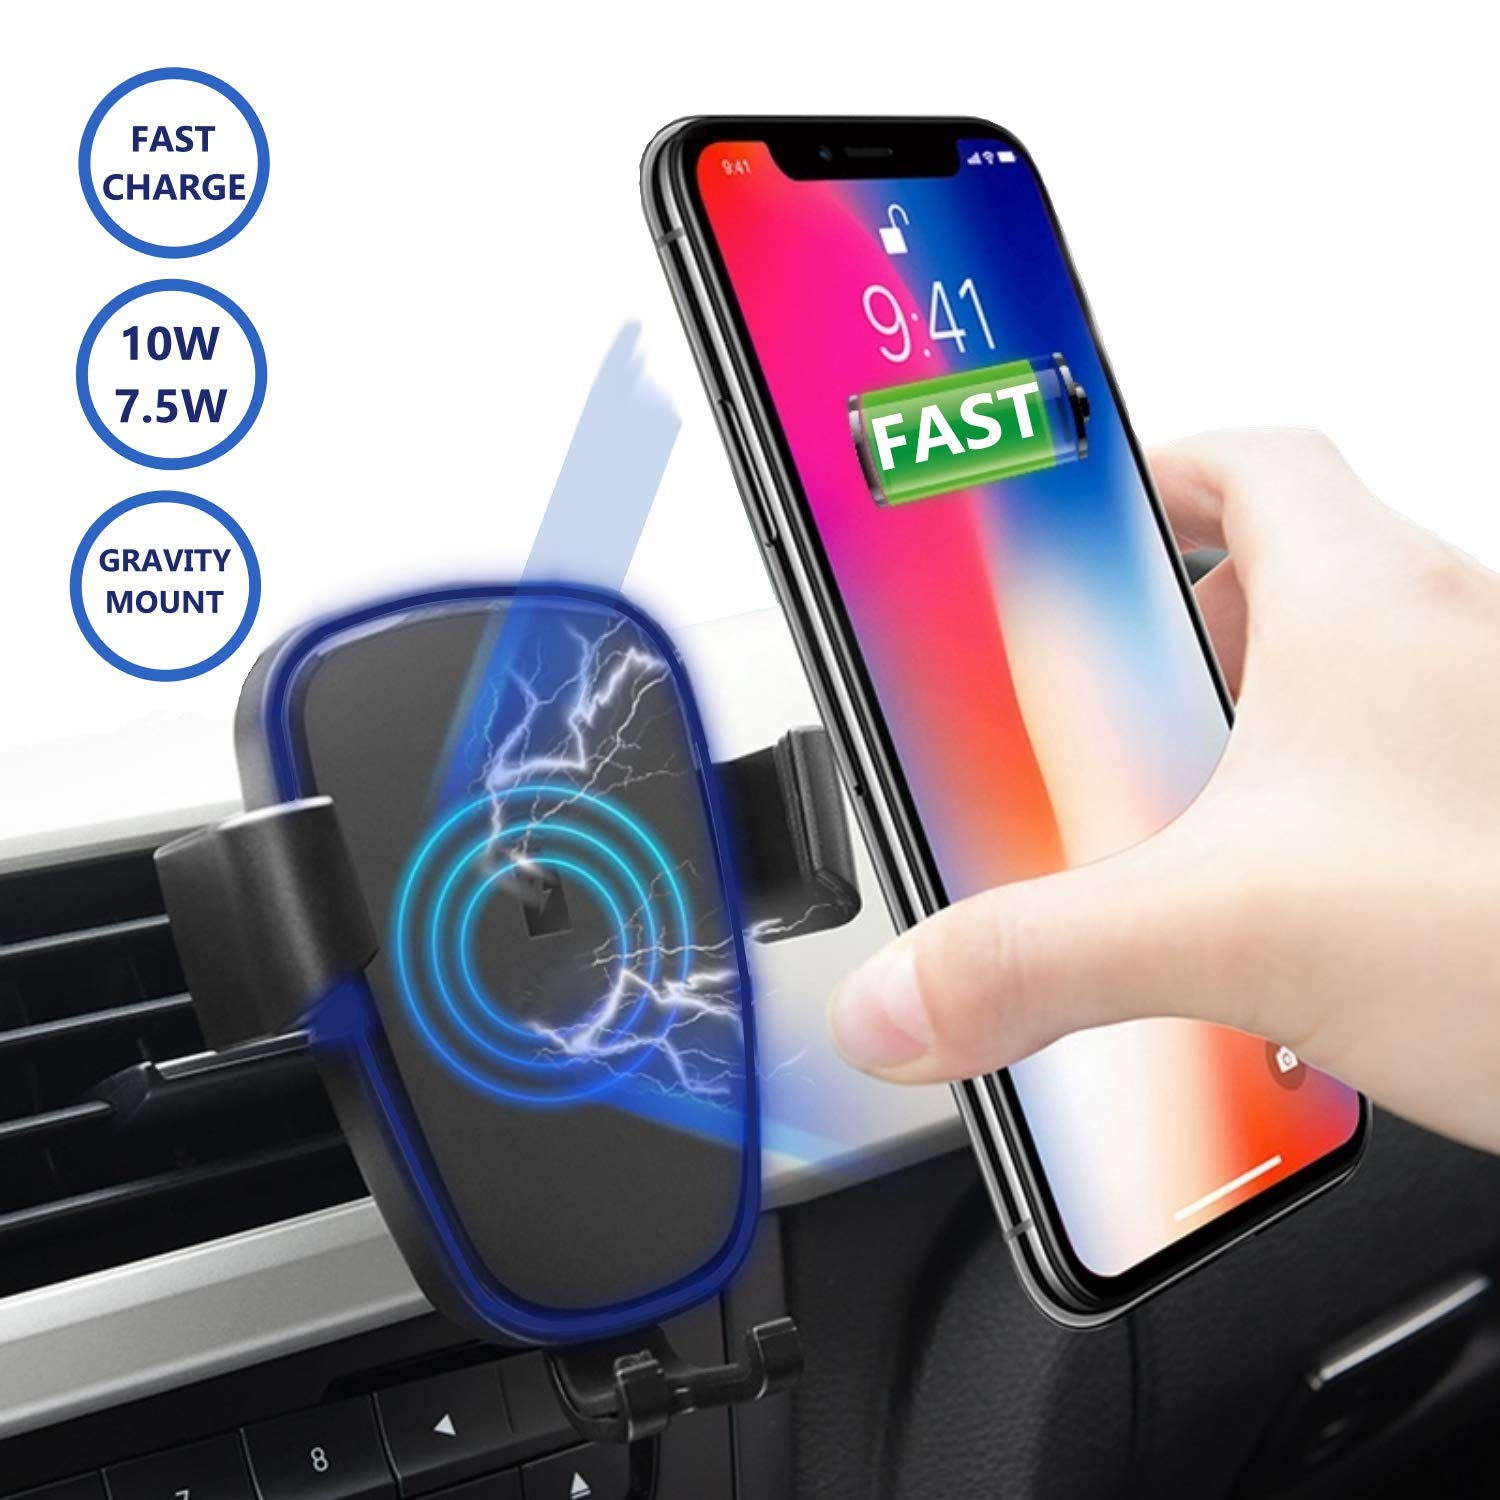 Upgraded 2in1 10W Wireless Car Charger Mount Fast Wireless Charger and Gravity Air Vent Car Mount Compatible with iPhone X//Xs//Xs Max//XR//8 Plus Samsung Galaxy S9//S8//S7//S6 Charging Qi Phone Devices Yzyway